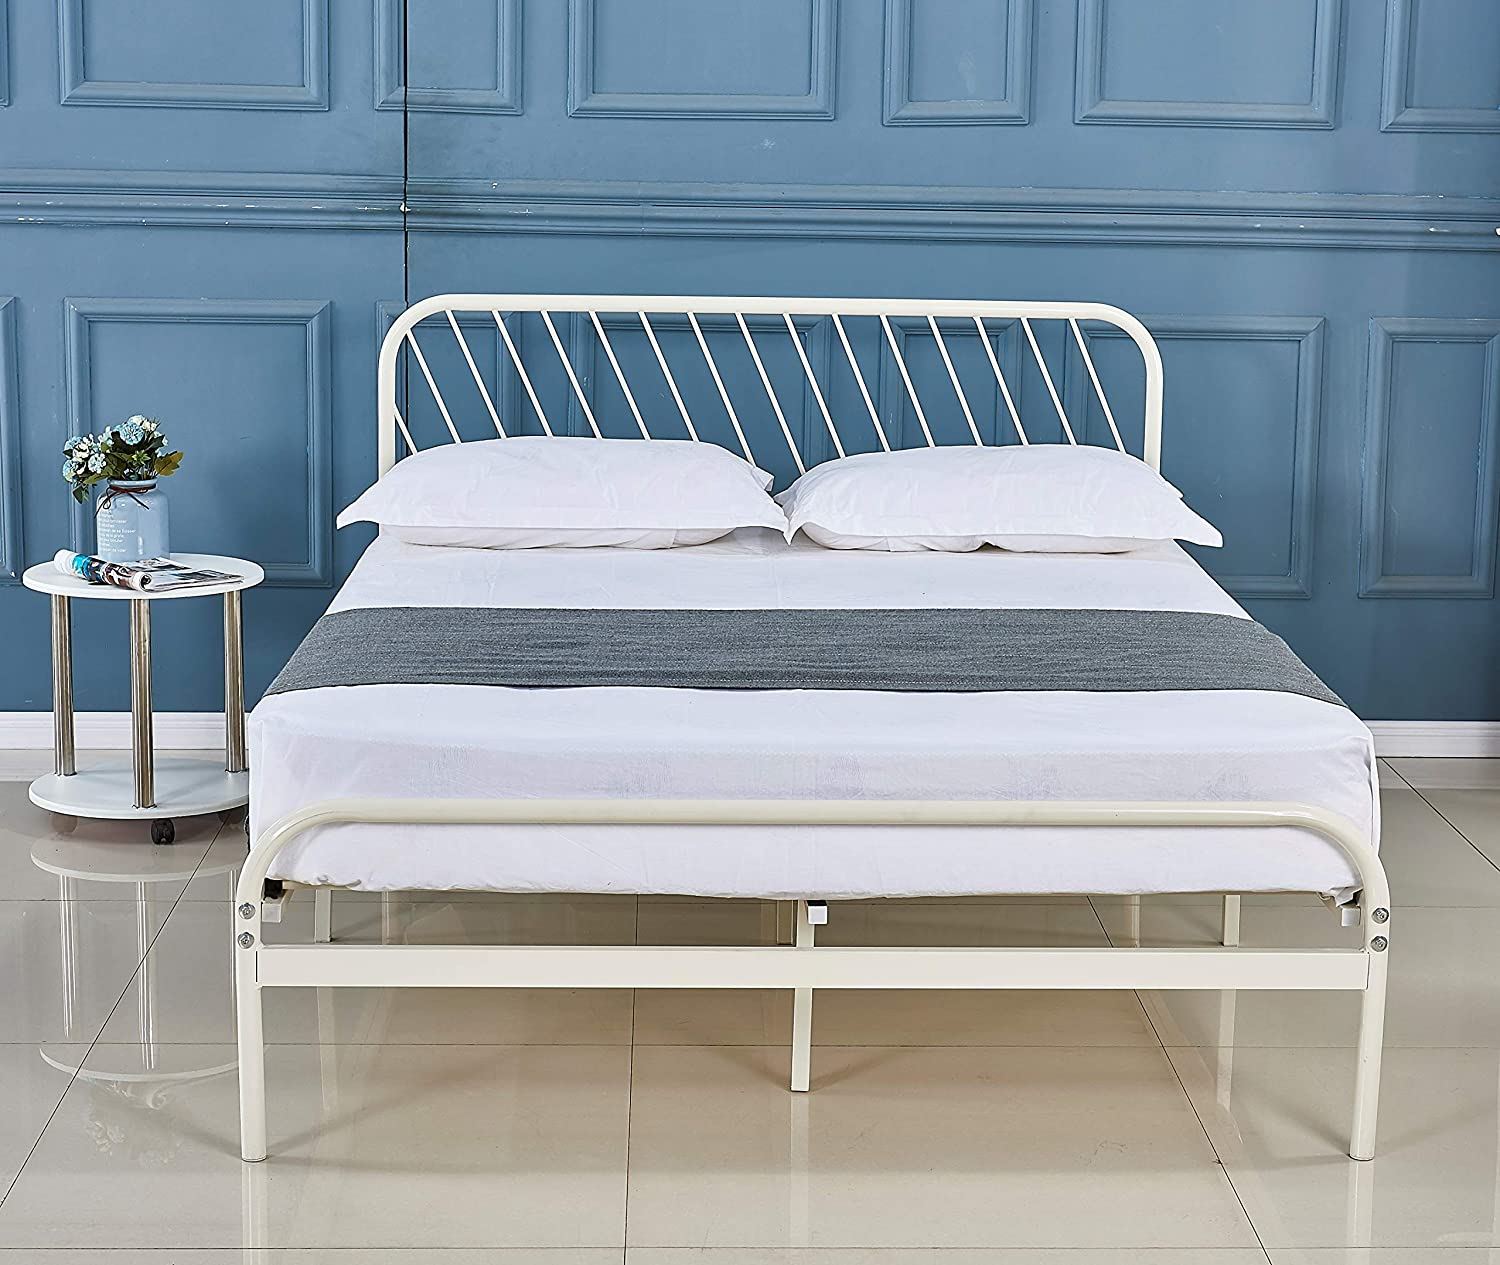 Alooter Queen Bed Frame, White Platform Metal Bed Frame Foundation Queen Size with Headboard and Footboard (DS-11 Queen)…